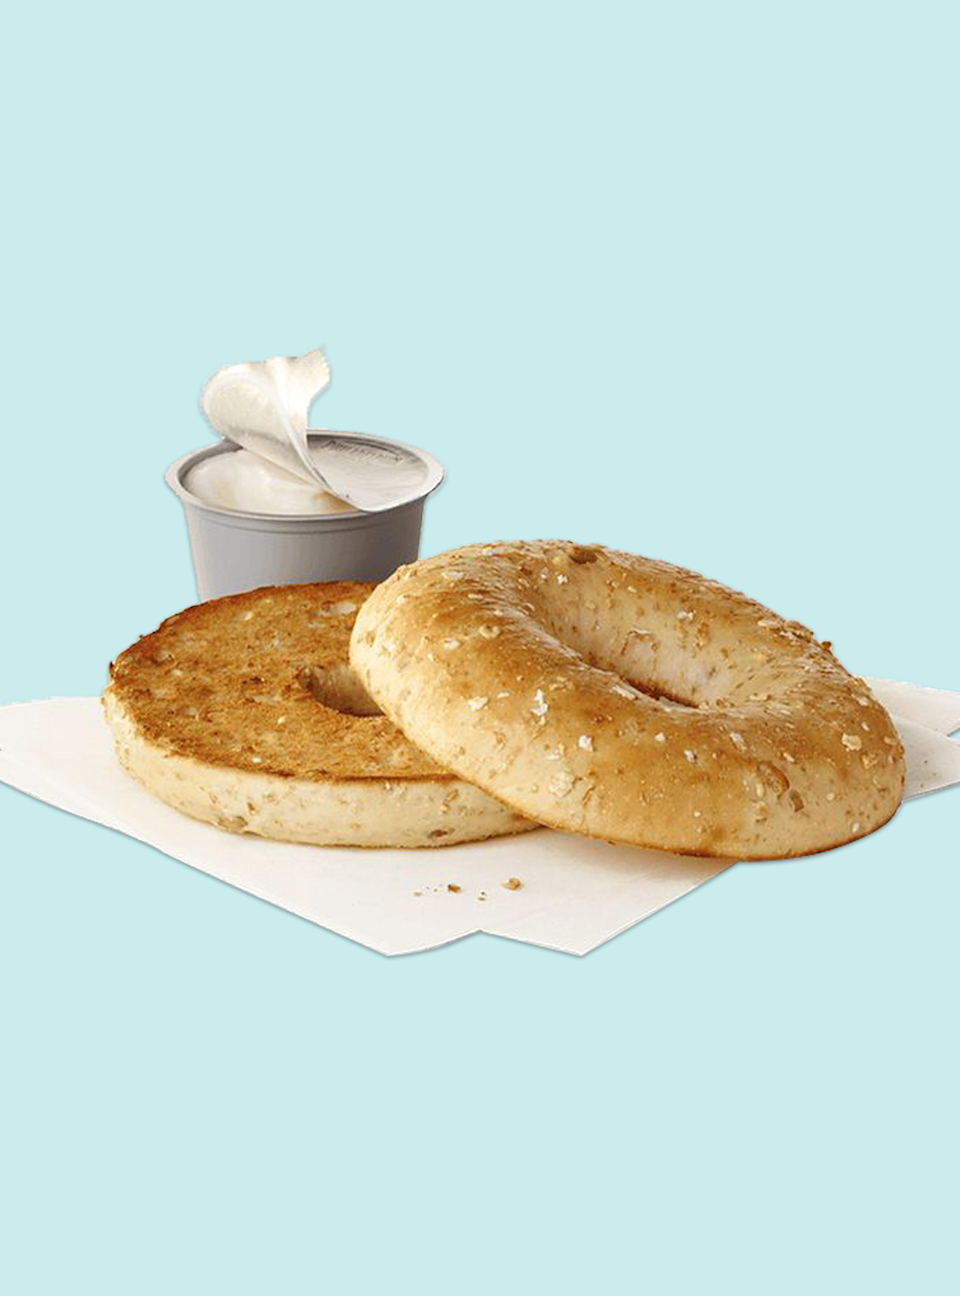 "<p><strong>Calories</strong>: 290</p><p><strong>Total Carbohydrates</strong>: 43g</p><p><strong>Saturated Fat</strong>: 4.5g</p><p><strong>Sodium</strong>: 460mg</p><p>This hearty bagel is normally served with cream cheese, but you can line order substitutions like scrambled eggs instead. While the fruit parfait may be lower in calories, the serving size isn't on par with the bagel itself — and the added sugar doesn't justify it over the noticeable fiber uptick in this bagel option. Packed with 3 grams of fiber, this is considered a good fiber source.</p><p><a class=""link rapid-noclick-resp"" href=""https://www.chick-fil-a.com/menu-items/sunflower-multigrain-bagel"" rel=""nofollow noopener"" target=""_blank"" data-ylk=""slk:Order Now"">Order Now</a></p>"